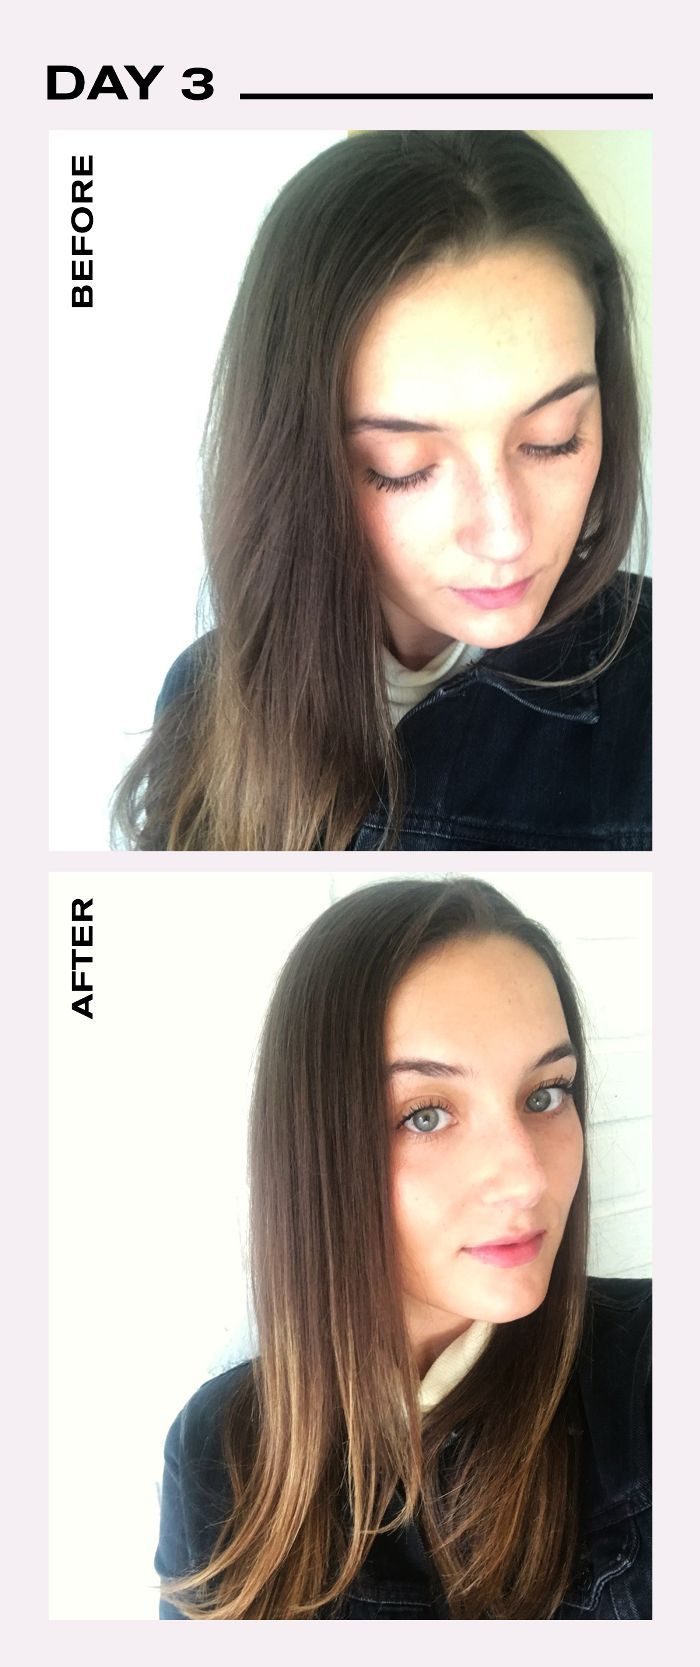 Day 3 Dry Shampoo Before/After Challenge